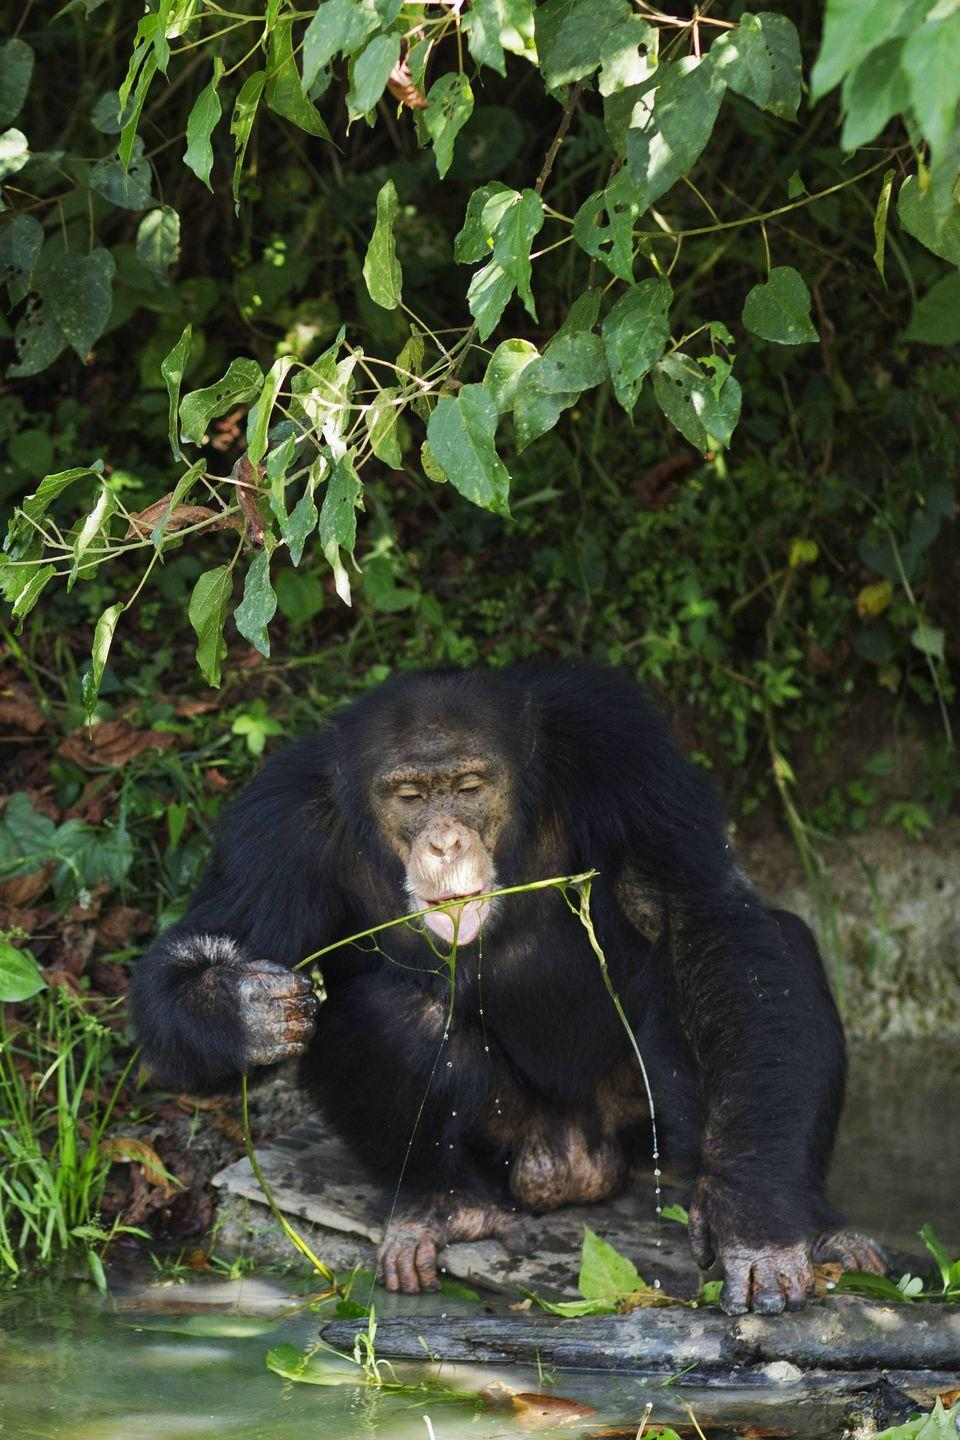 "<p><strong>Scientific classification:</strong> <em>Pan troglodytes verus</em></p><p><strong>Location:</strong> Côte d'Ivoire, Guinea</p><p>The chimpanzee species—comprising the common chimp and the less territorial bonobo—are the closest living relatives to humans, our lasting common ancestor having lived around 12 million years ago. Both chimp species are standing on the brink of extinction.</p><p>The common chimpanzee comprises four (possibly five) subspecies with around 300,000 individuals across a wide range in Africa. The western chimpanzee is the closest to the brink, with only a <a href=""https://www.neprimateconservancy.org/western-chimpanzee.html"" rel=""nofollow noopener"" target=""_blank"" data-ylk=""slk:few thousand individuals"" class=""link rapid-noclick-resp"">few thousand individuals</a> surviving. The bulk of the remaining individuals are the central chimpanzee, comprising somewhere between 70,000 and 115,000 chimps, though estimates vary widely. Like the gorilla, habitat encroachment, poaching, hunting, and disease threaten the individuals.</p>"